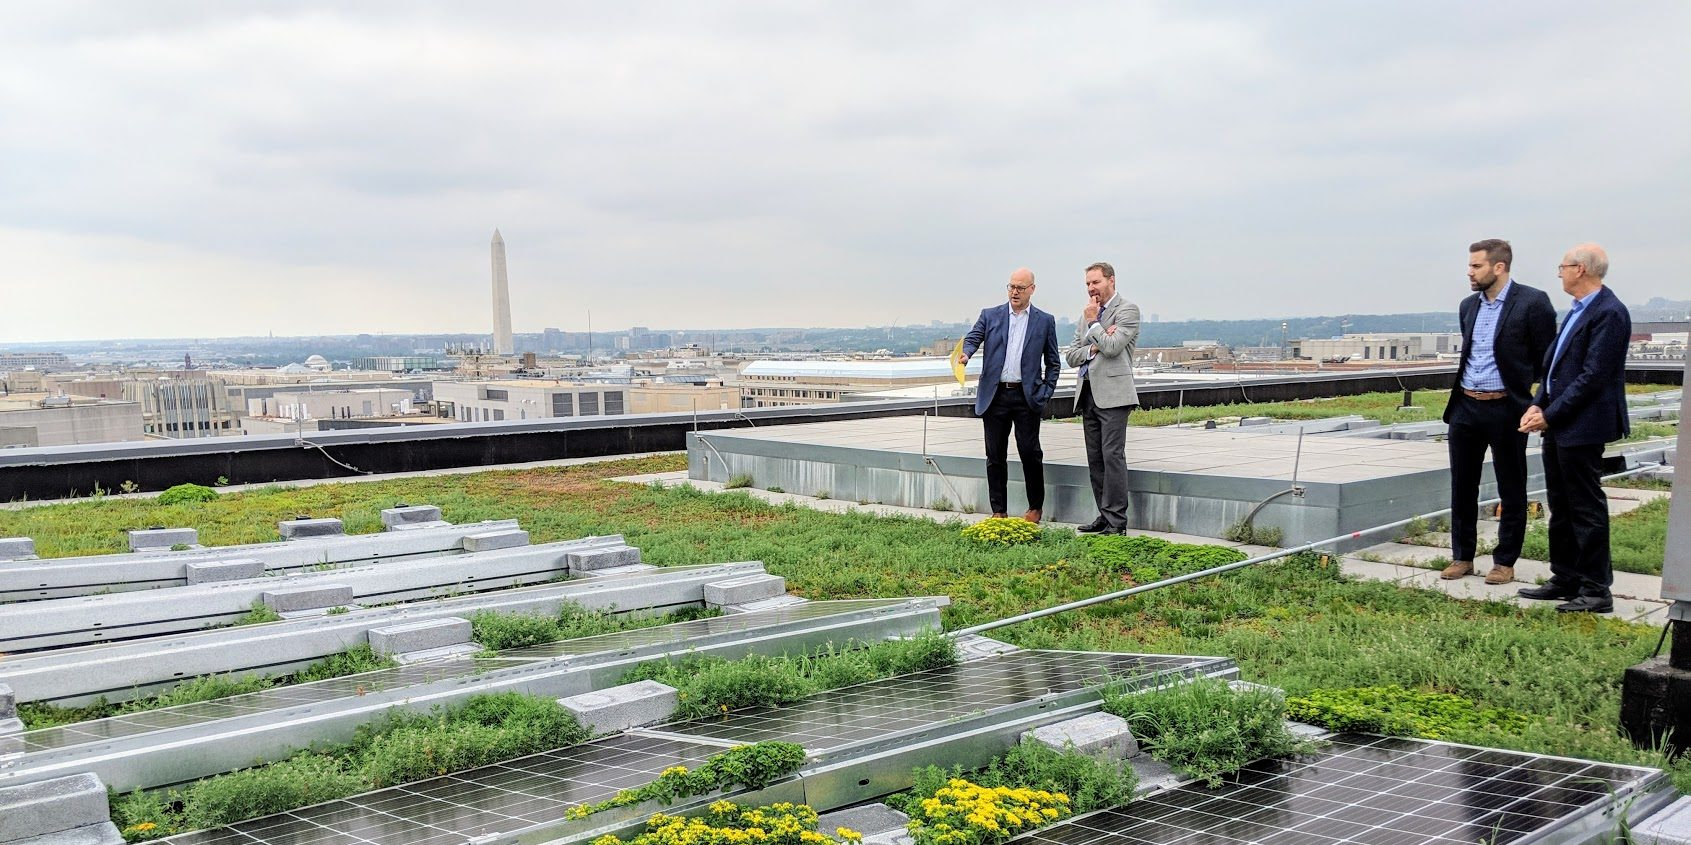 Four people are standing in groups of two on a rooftop covered in greenery and solar panels. The rooftop overlooks a city and a tower is in the back. The sky is overcast.